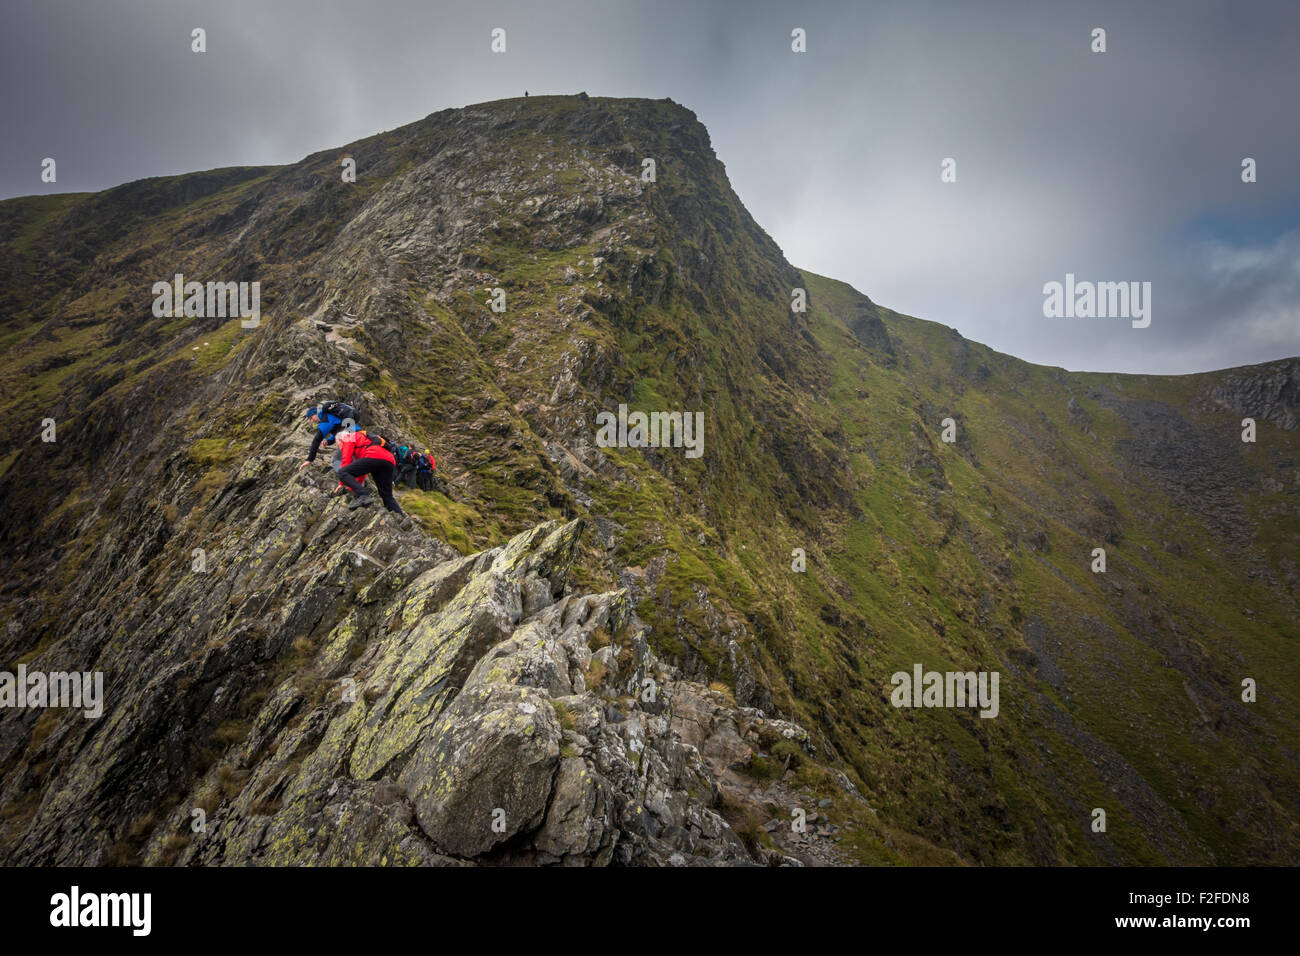 People scrambling up Sharp Edge, a Grade 1 scramble to reach the summit of Blencathra mountain in the English Lake - Stock Image